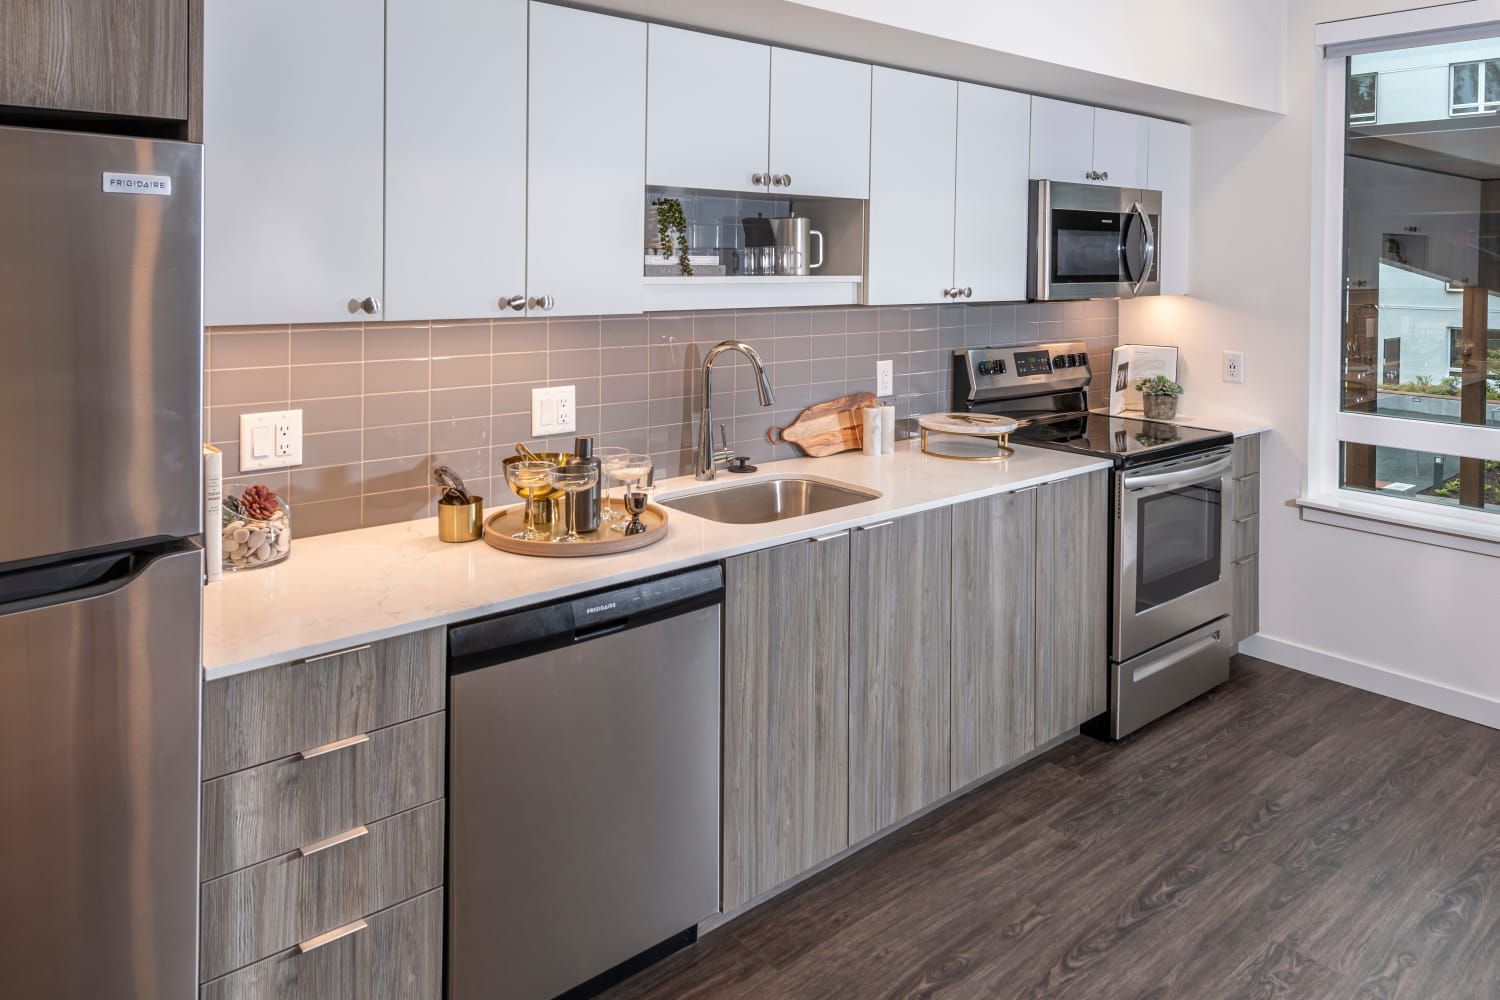 Model kitchen with stainless-steel appliances at Nightingale in Redmond, Washington